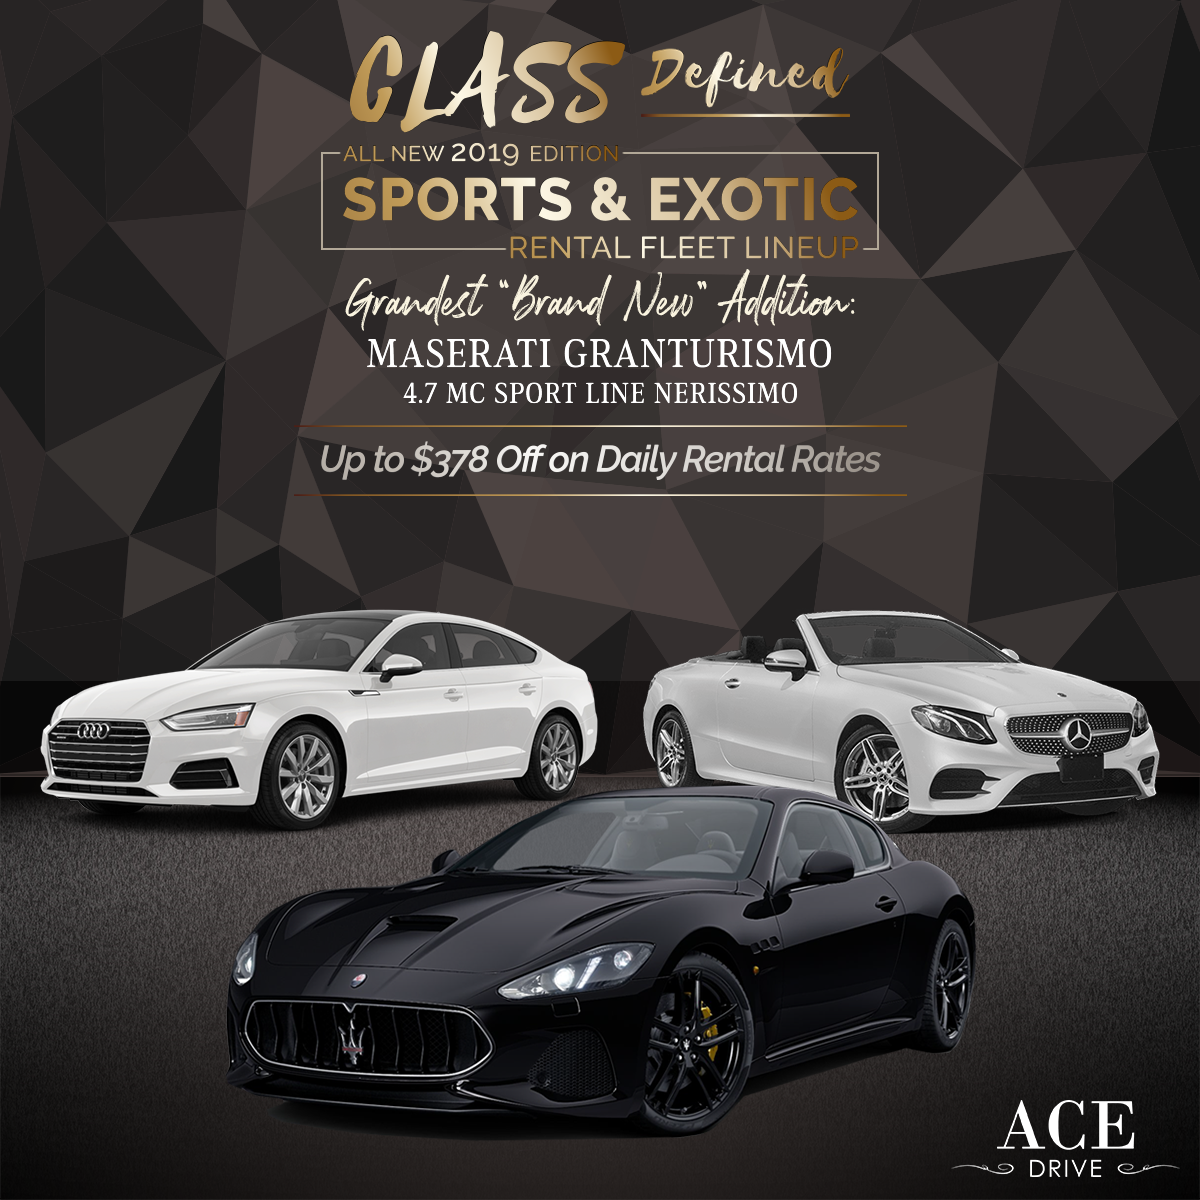 Up to $378 Off Daily Rental Rates All New 2019 Edition Sports & Exotic Rental Fleet Lineup